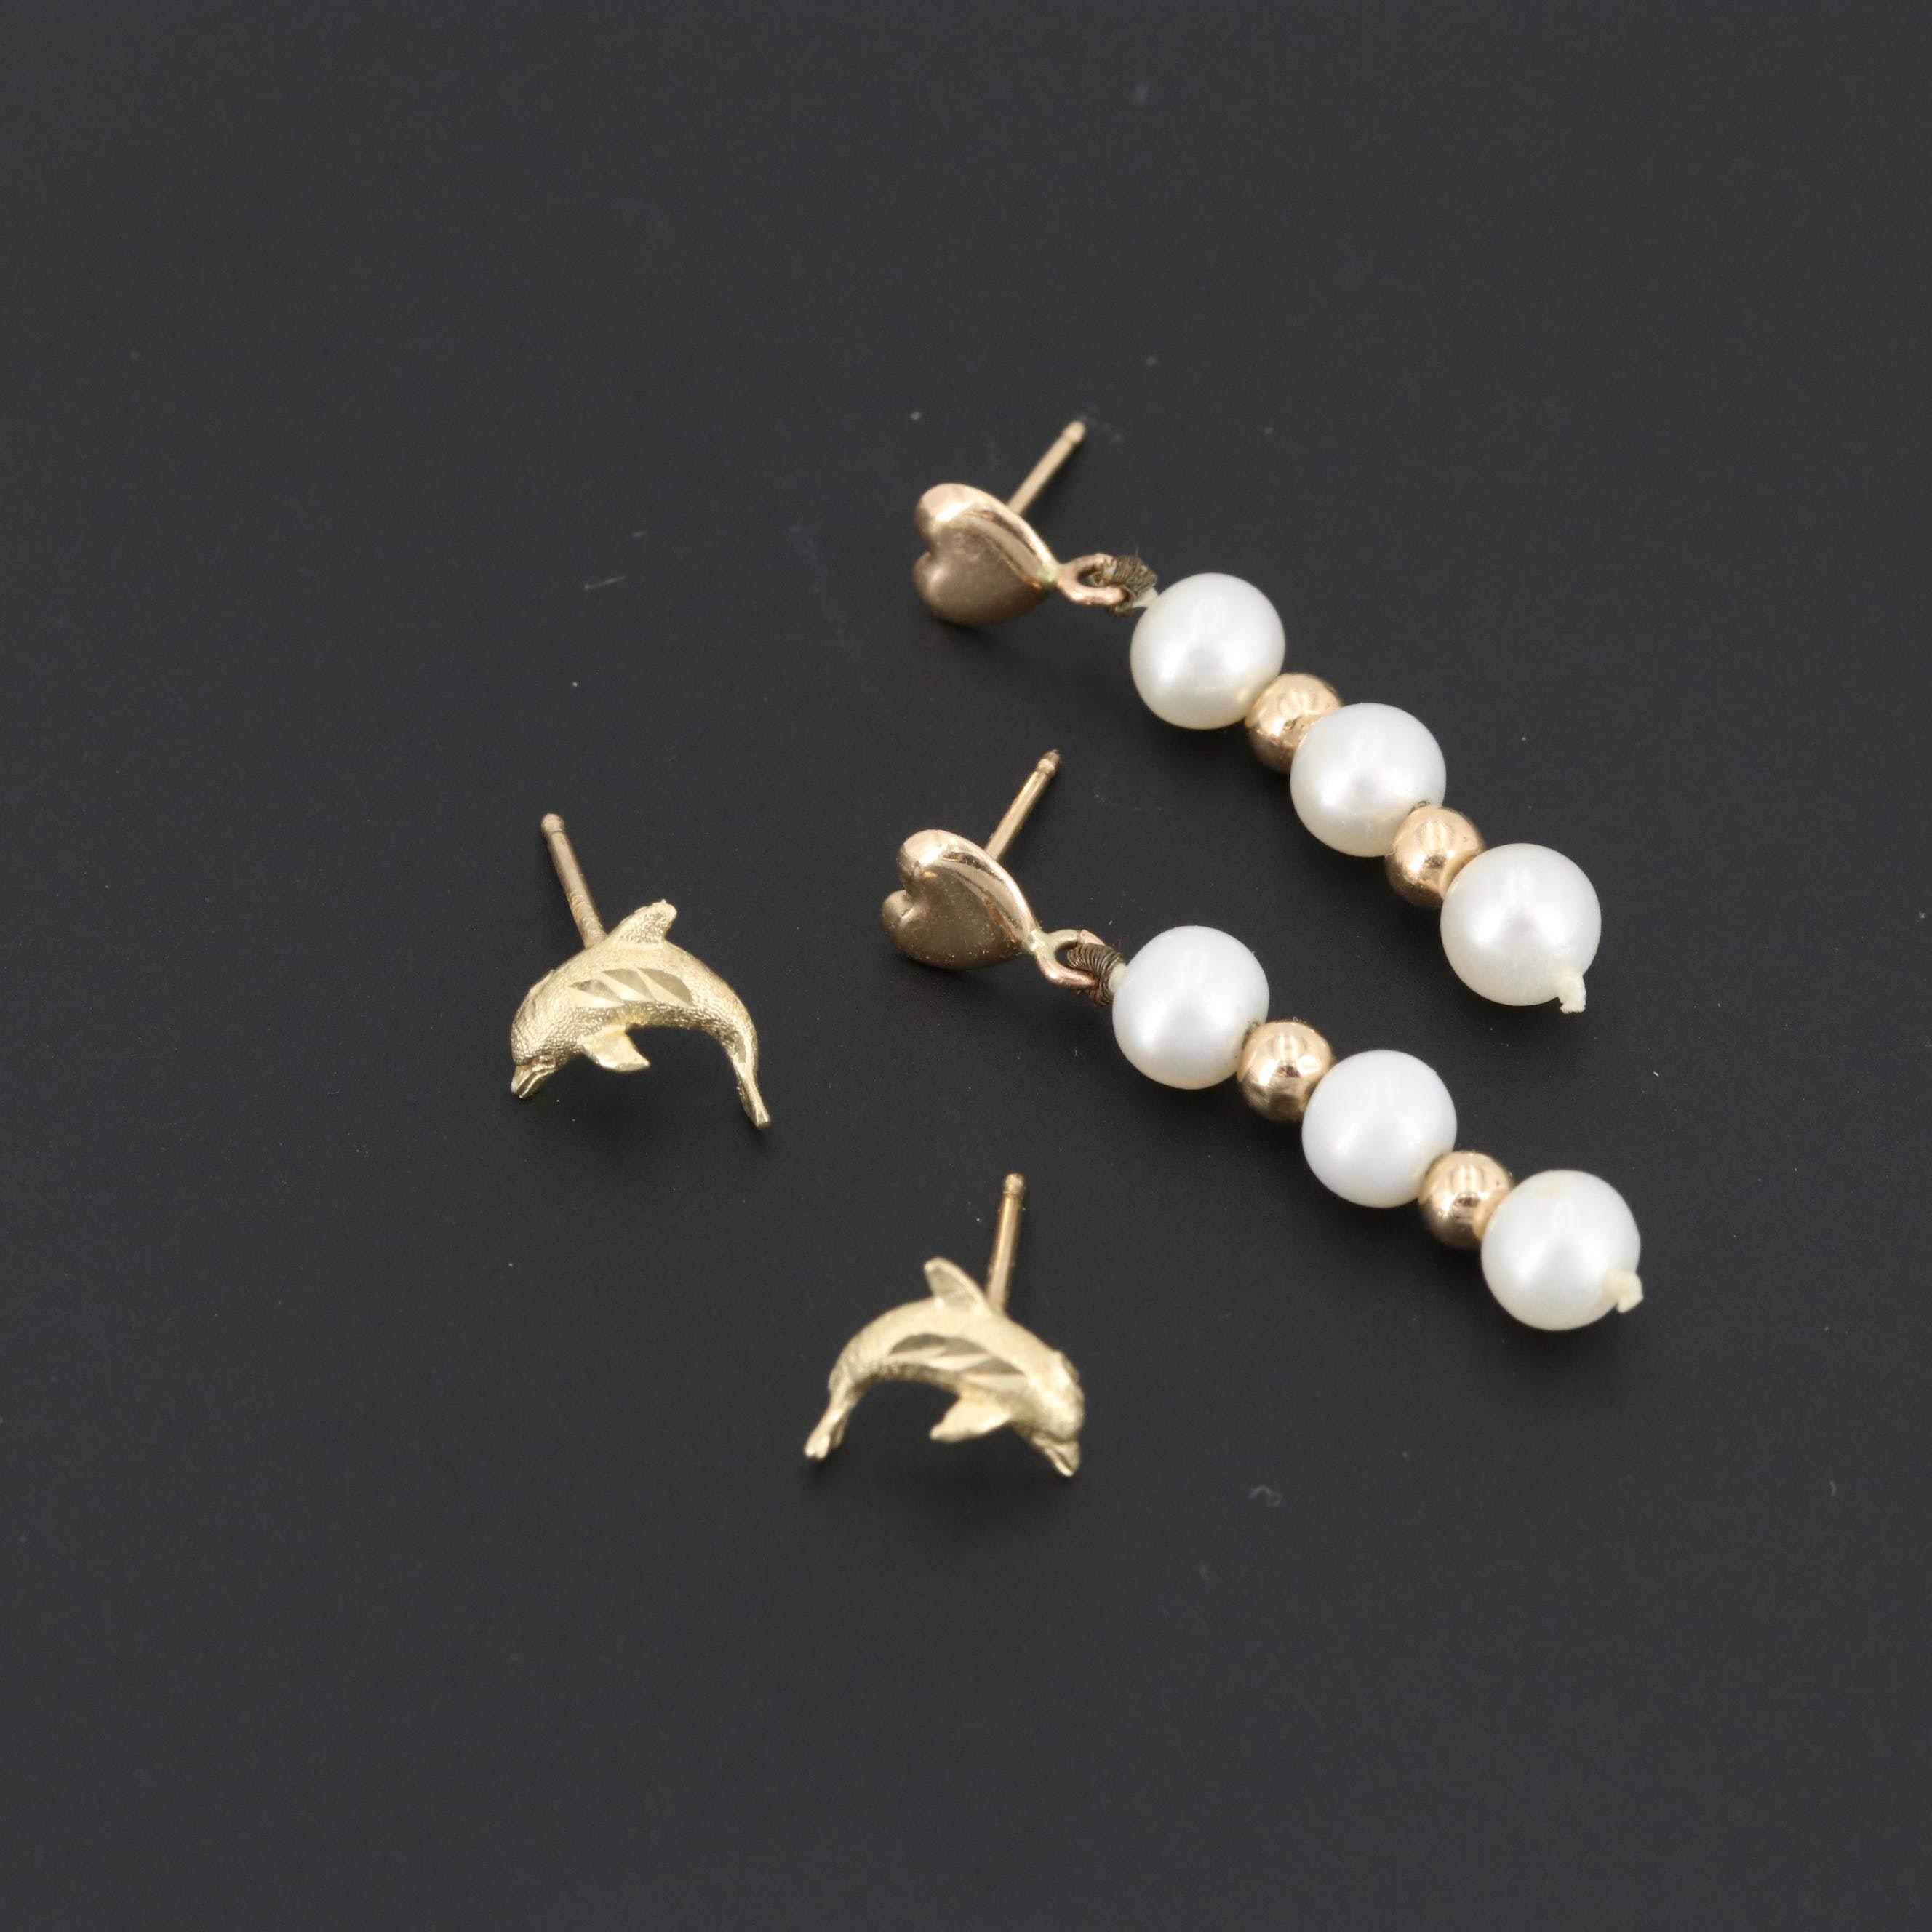 14K Yellow Gold Dolphin Earrings and Cultured Pearl Earrings